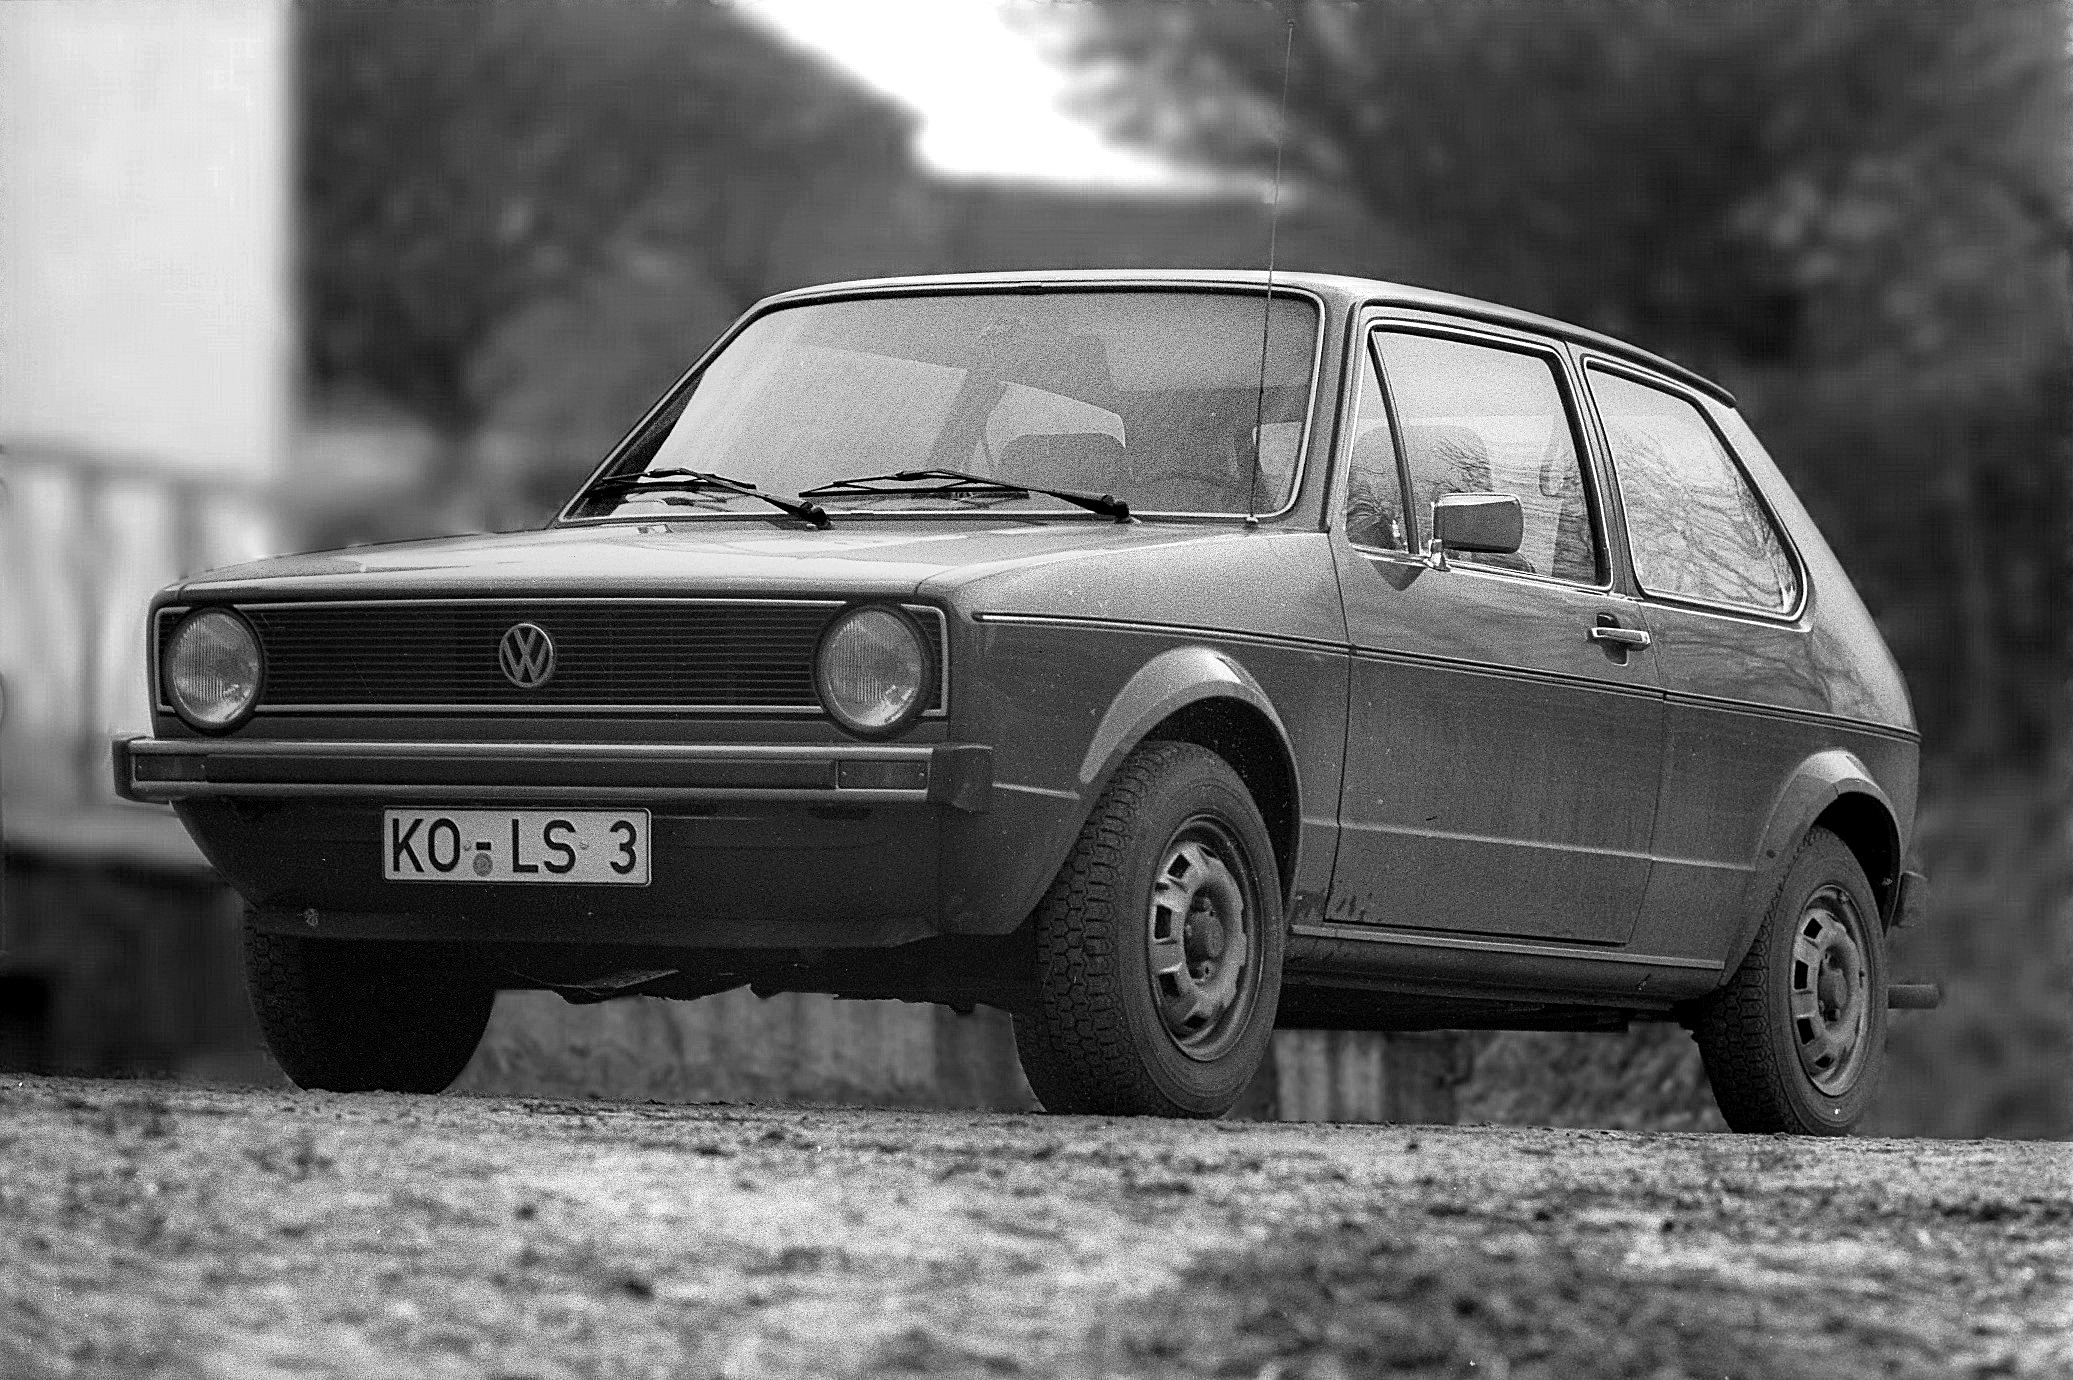 file vw golf 1 bj 1974 1975 02 jpg wikimedia commons. Black Bedroom Furniture Sets. Home Design Ideas